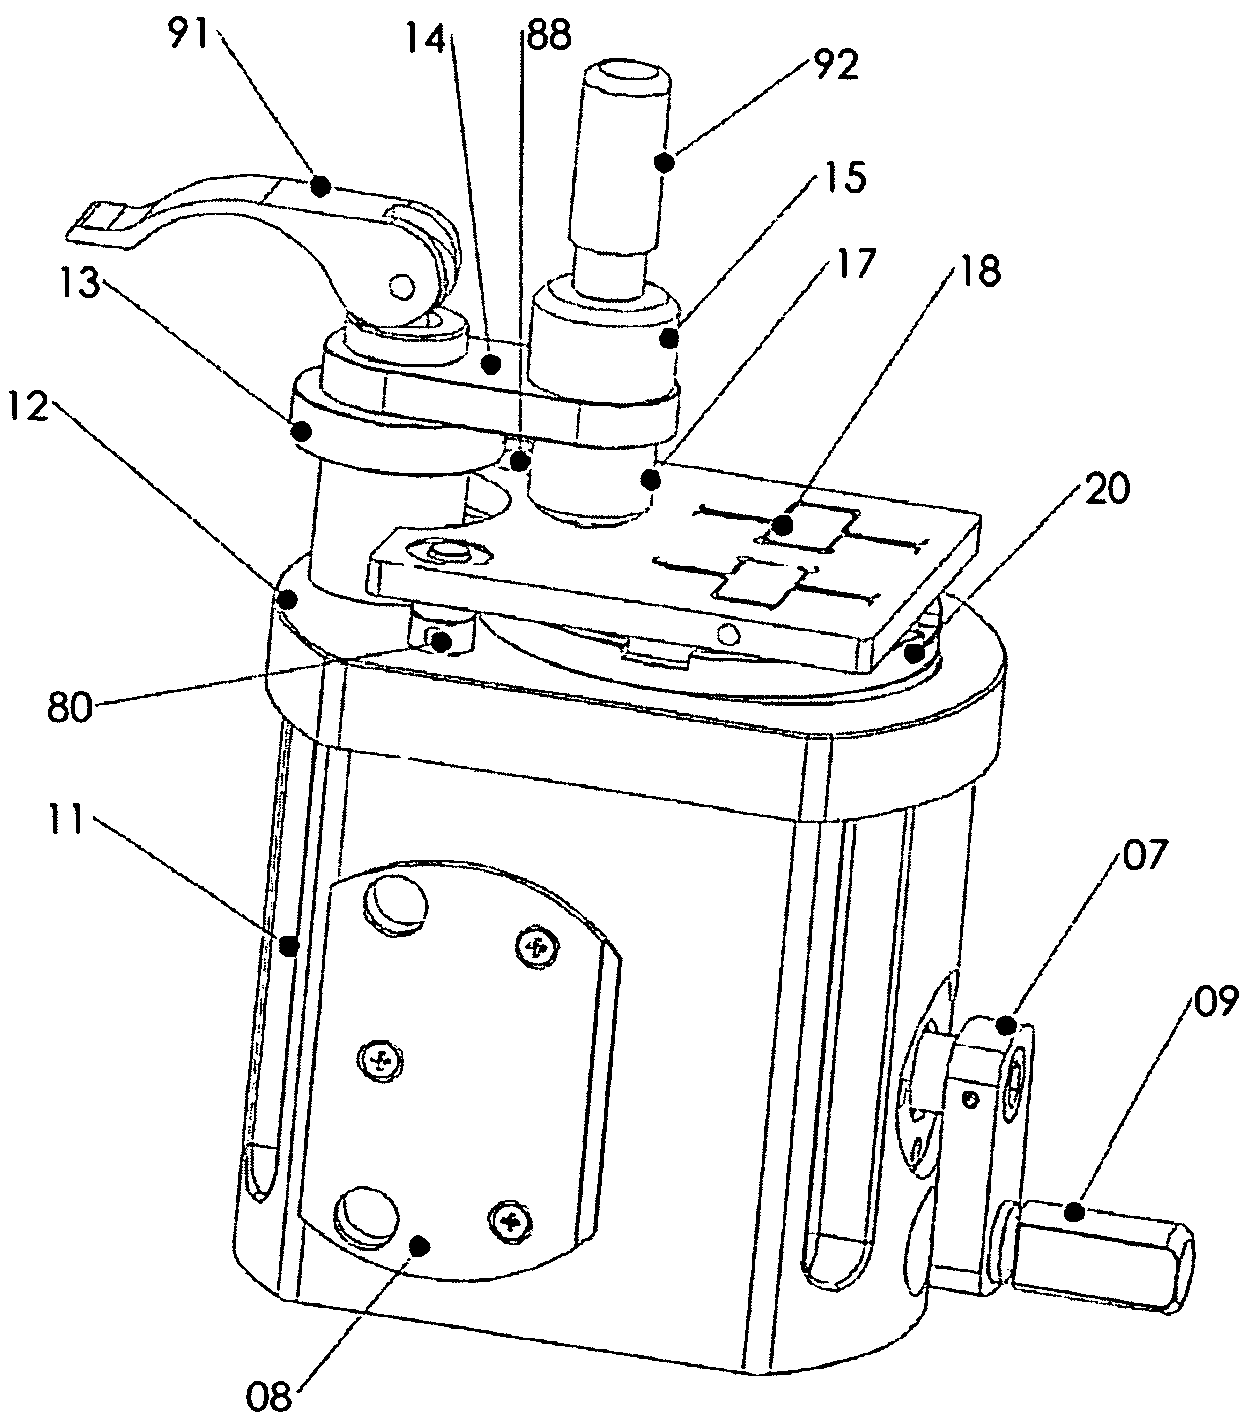 brevet us7491114 fiber optic polisher brevets Fiber Connector Types Chart patent drawing